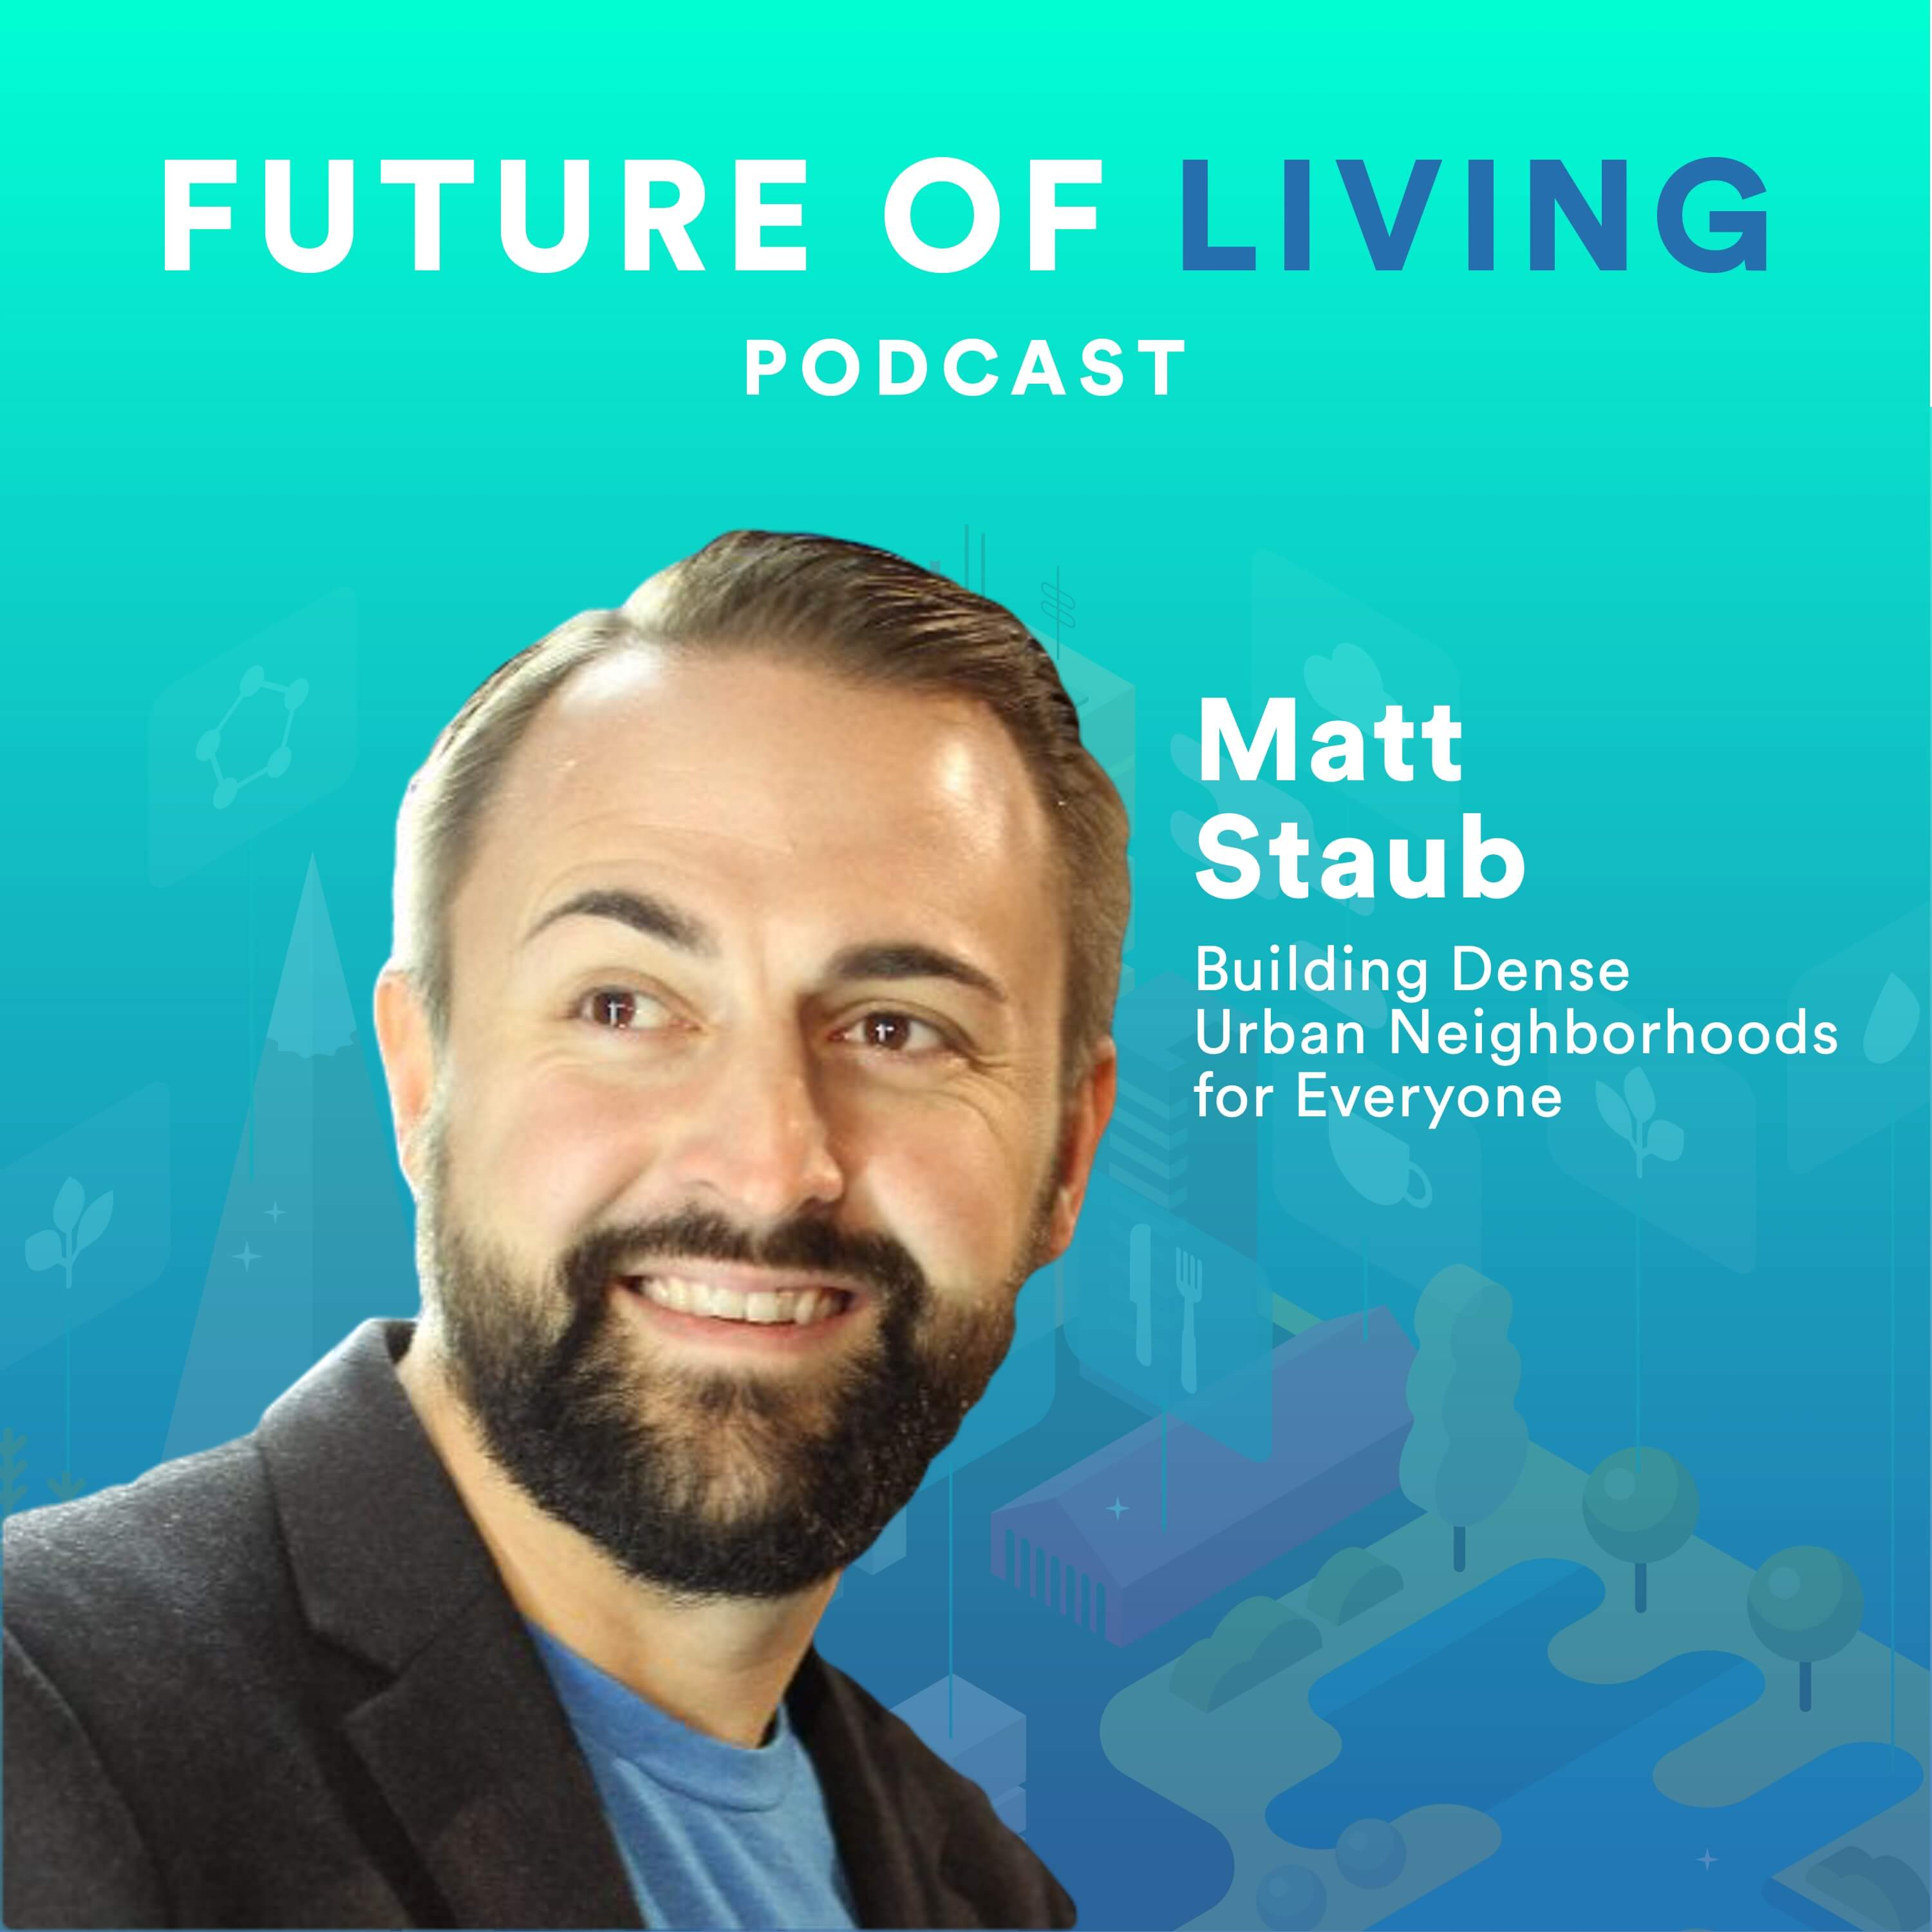 Matt Staub on the Future of Living Podcast with Blake Miller